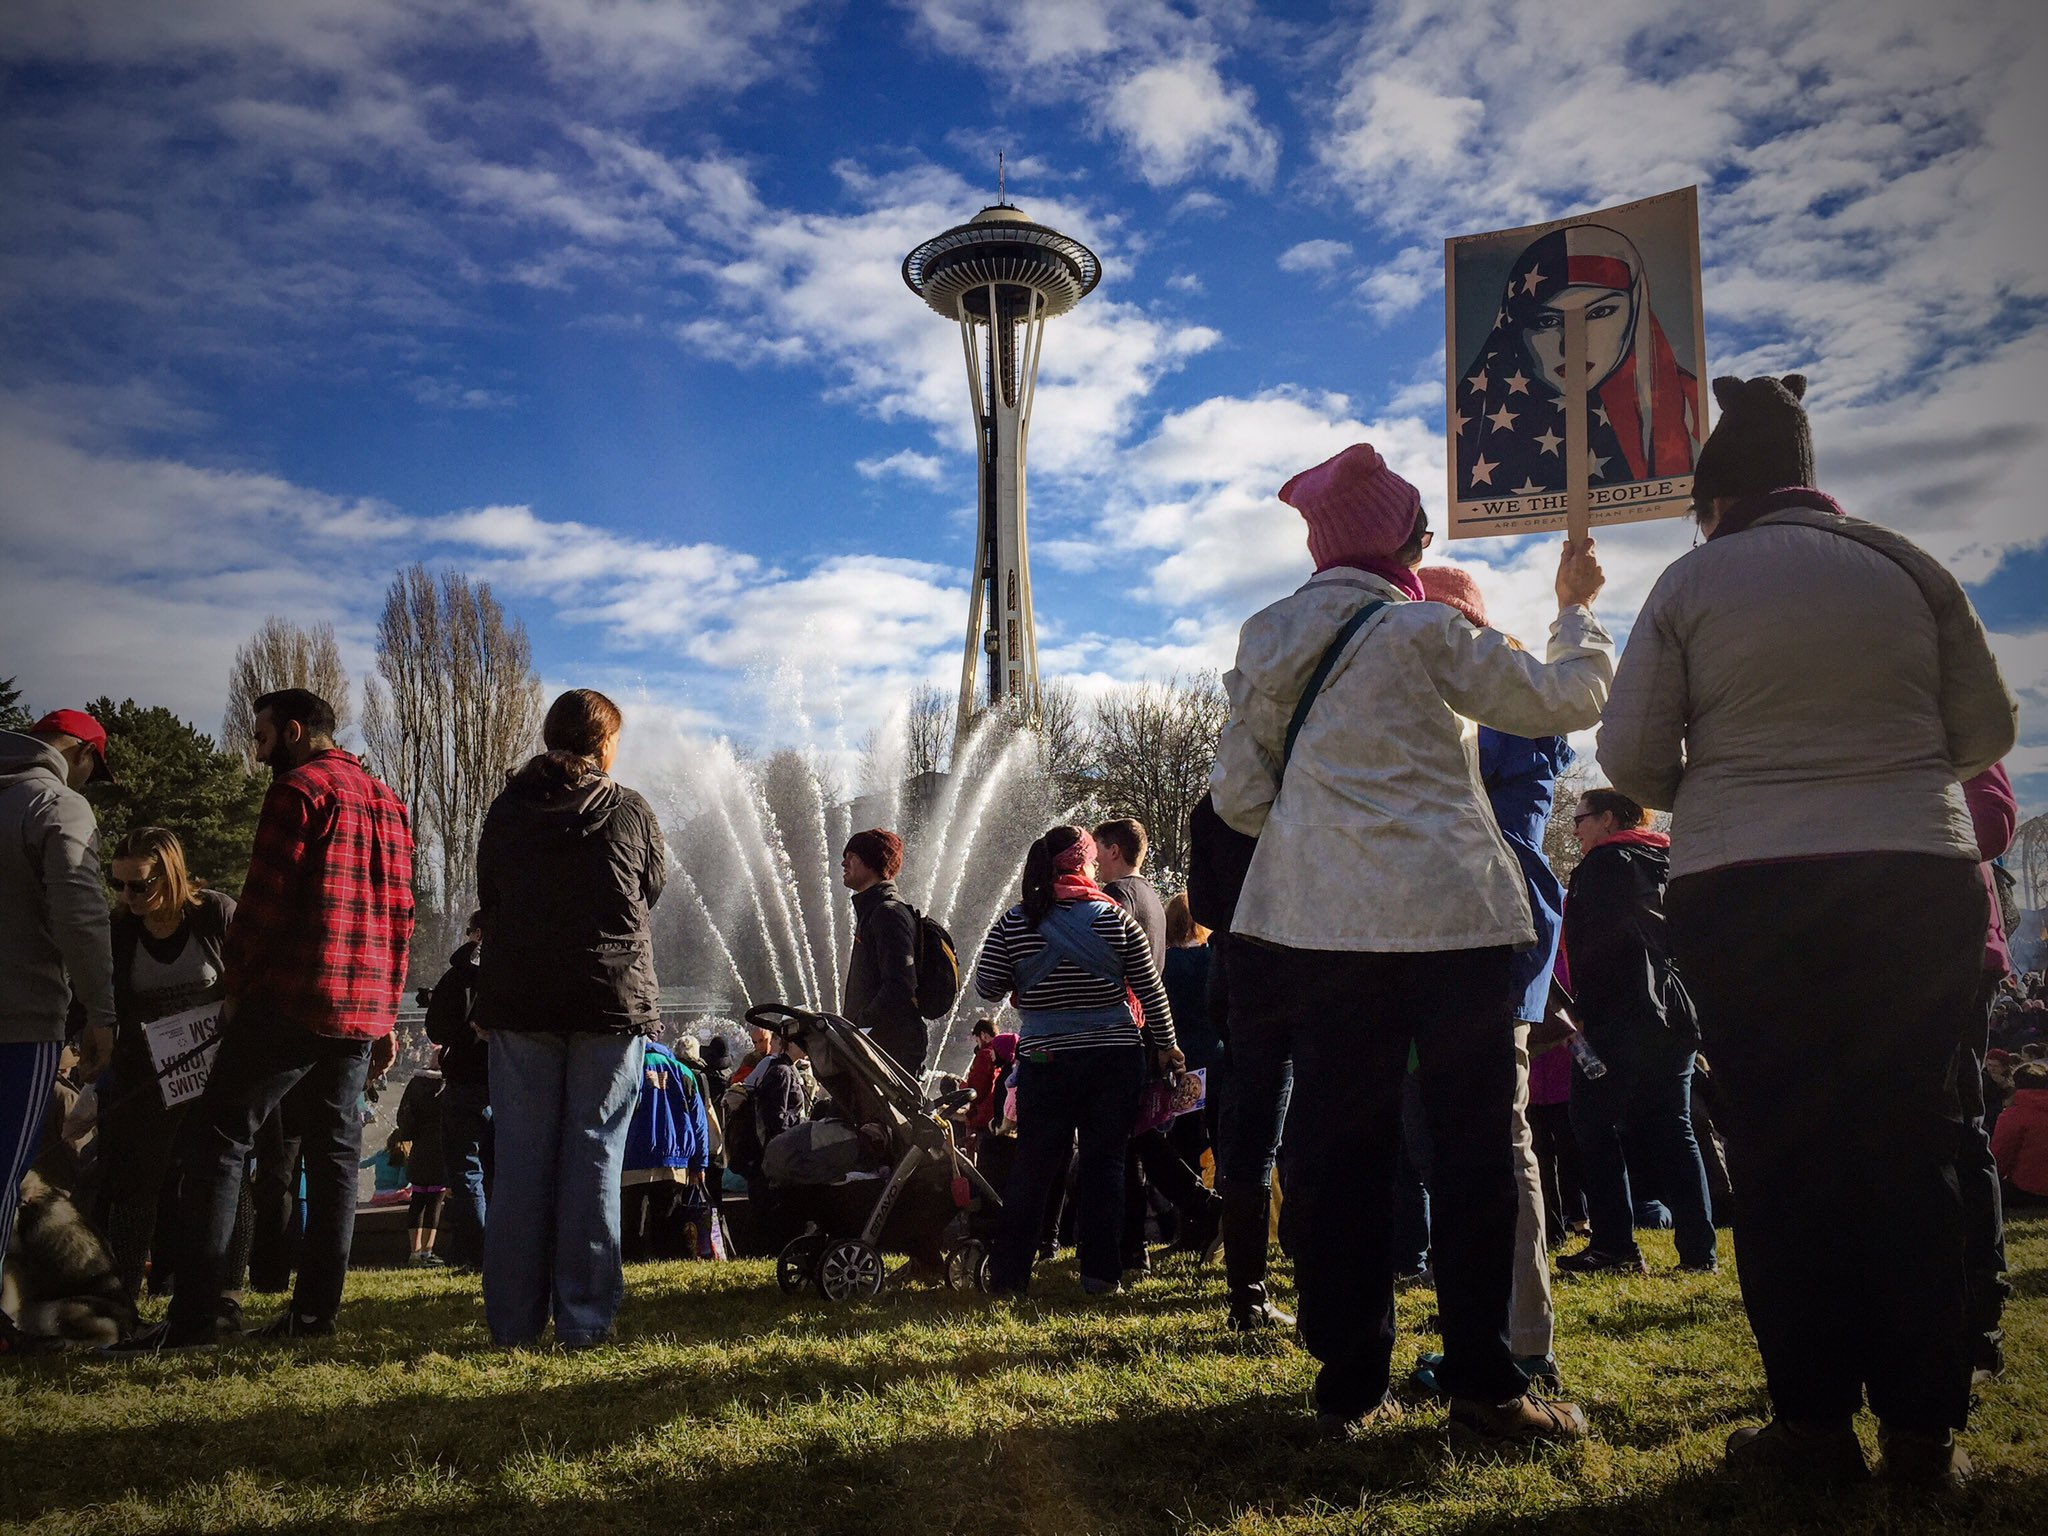 #Seattle Center #womensmarchseattle @king5seattle https://t.co/3xbcbDijCO